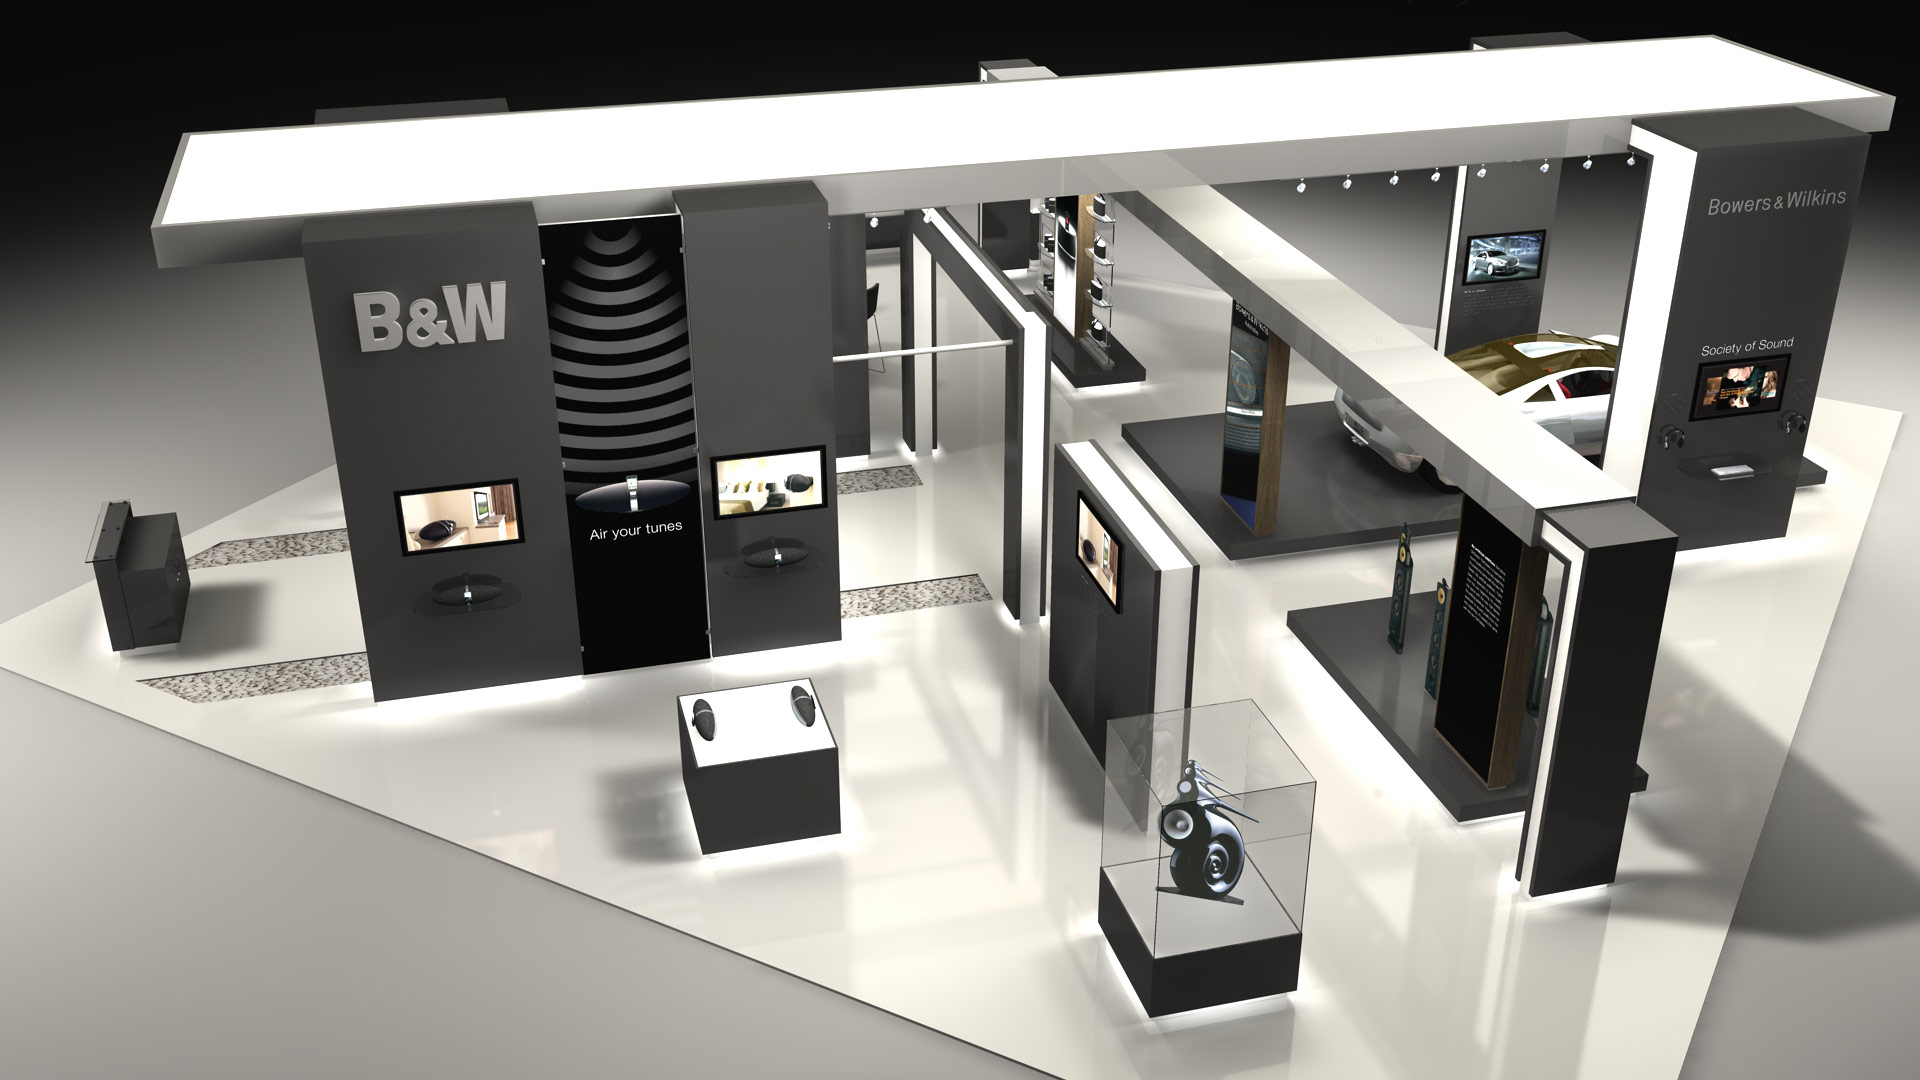 Modern Exhibition Stand Near Me : Bowers & wilkins ces las vegas thomas manss & company